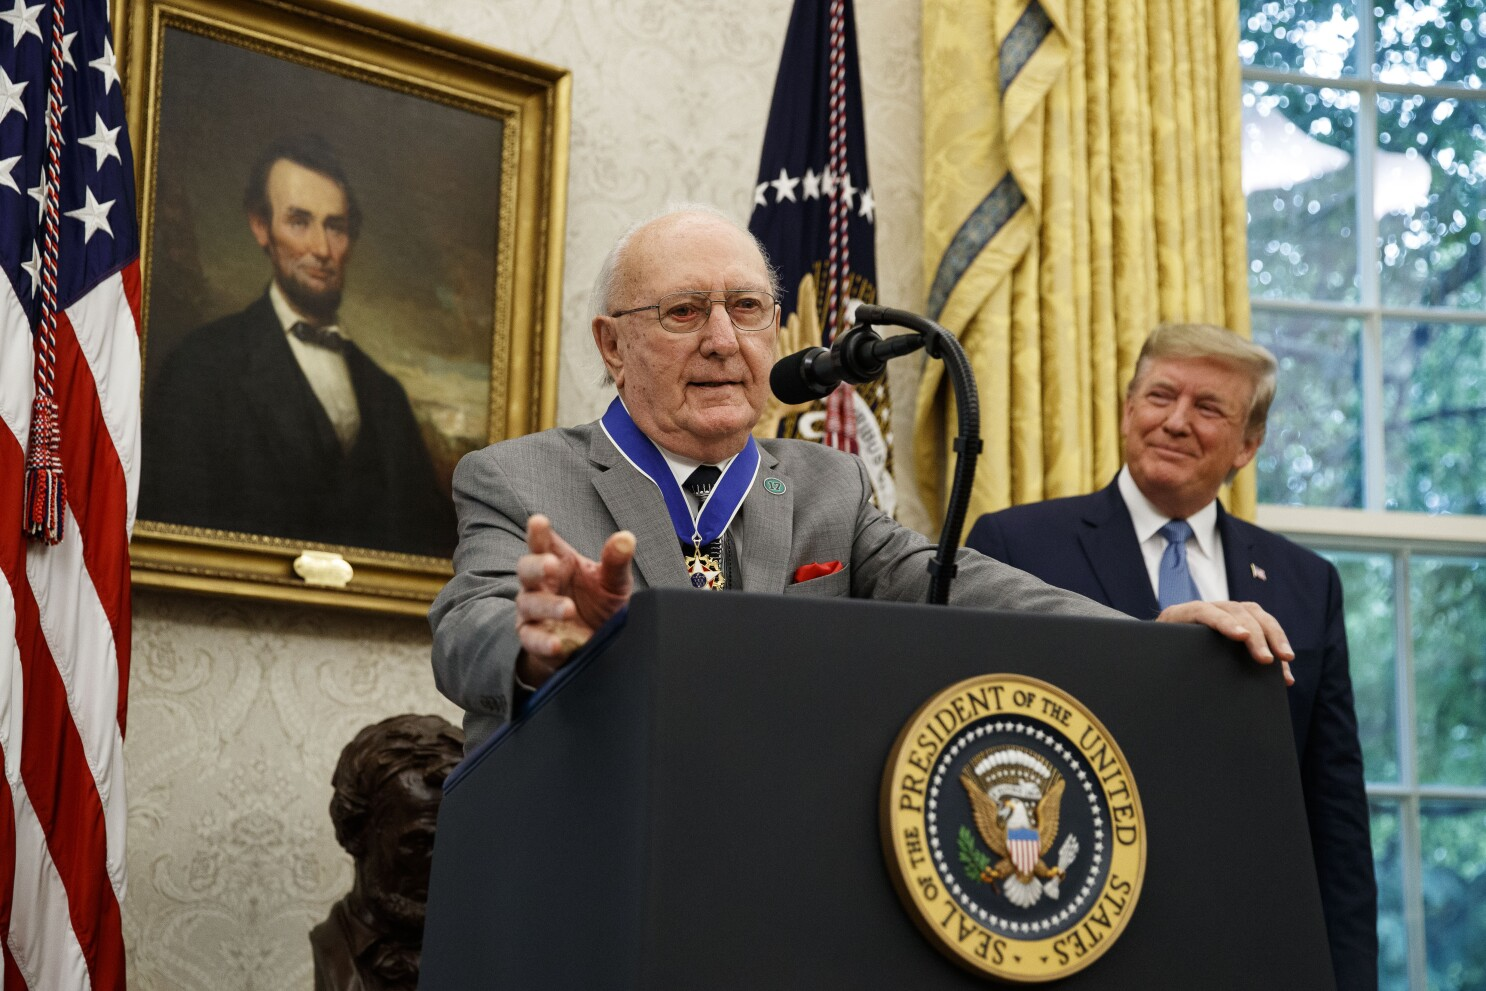 Trump awards Medal of Freedom to NBA star Bob Cousy